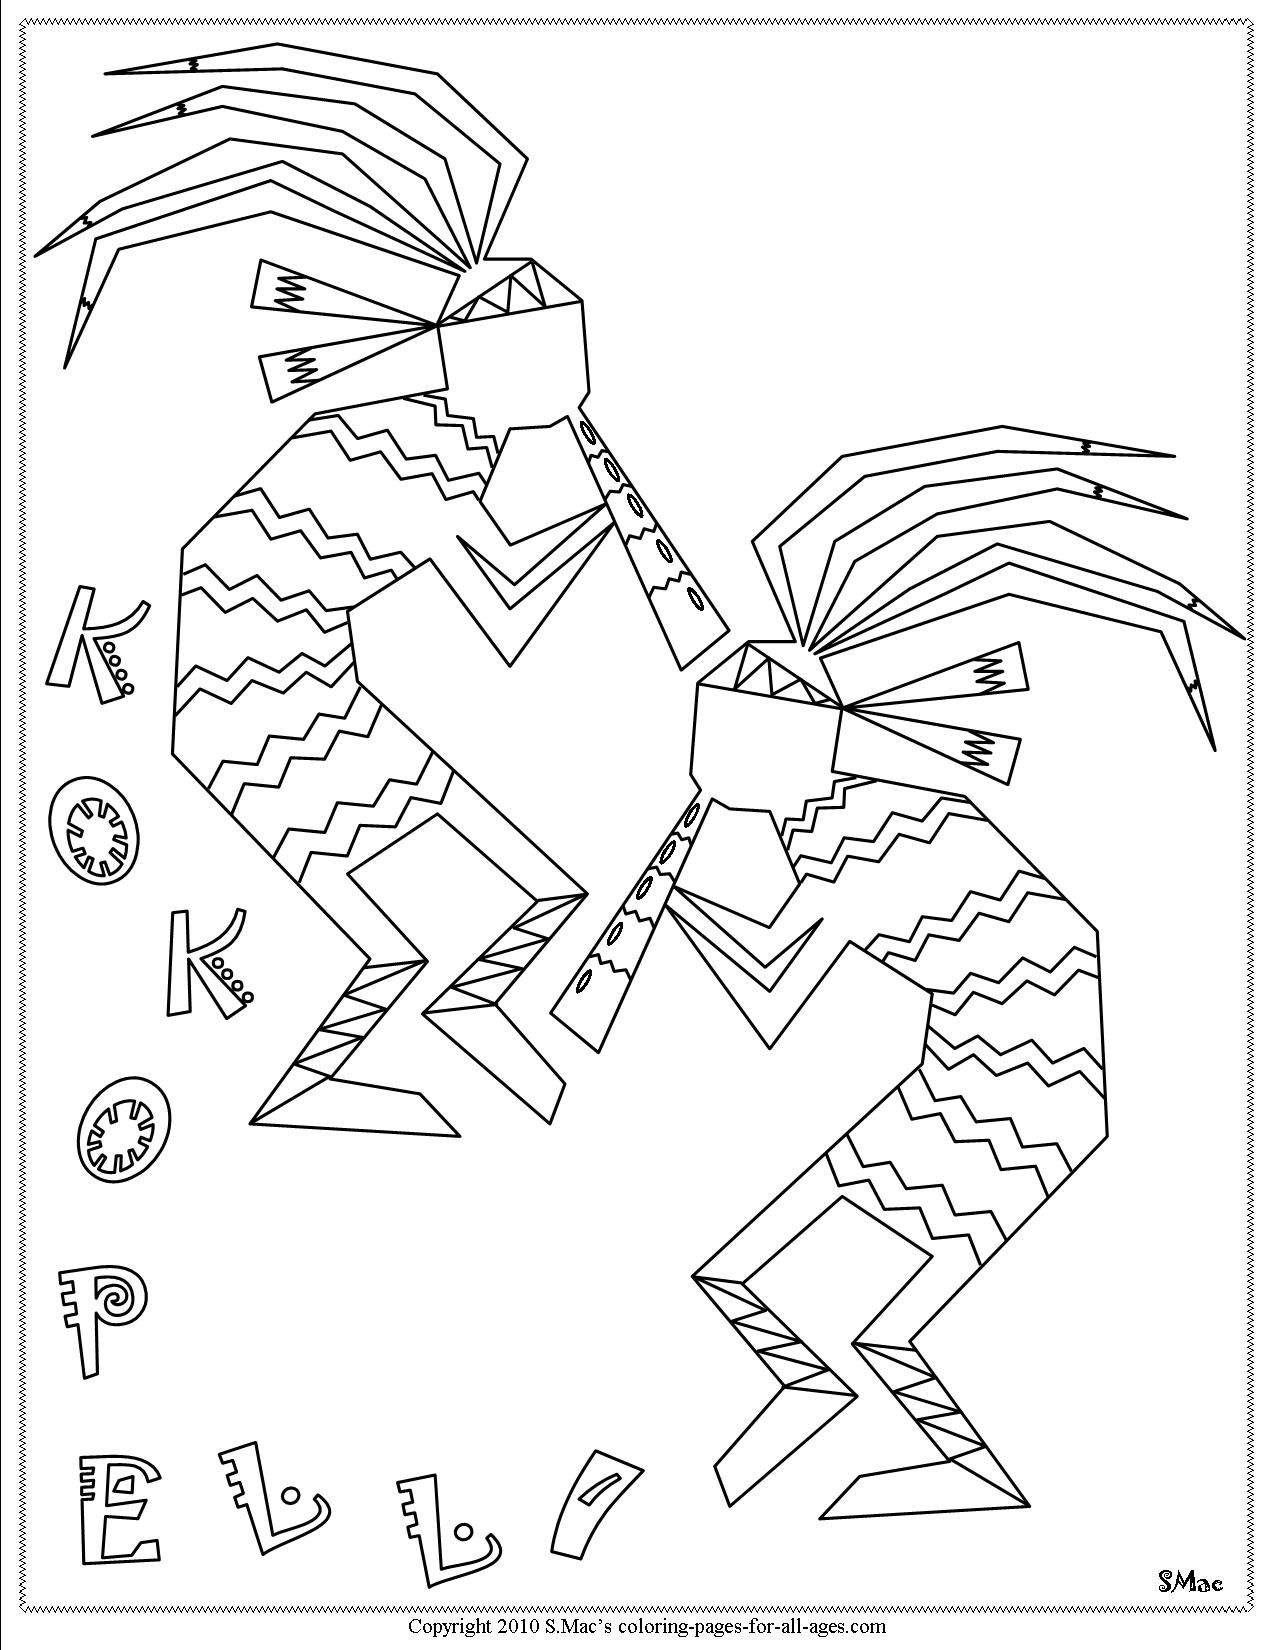 navajo indian coloring pages cherokee indian coloring pages coloring home coloring indian navajo pages